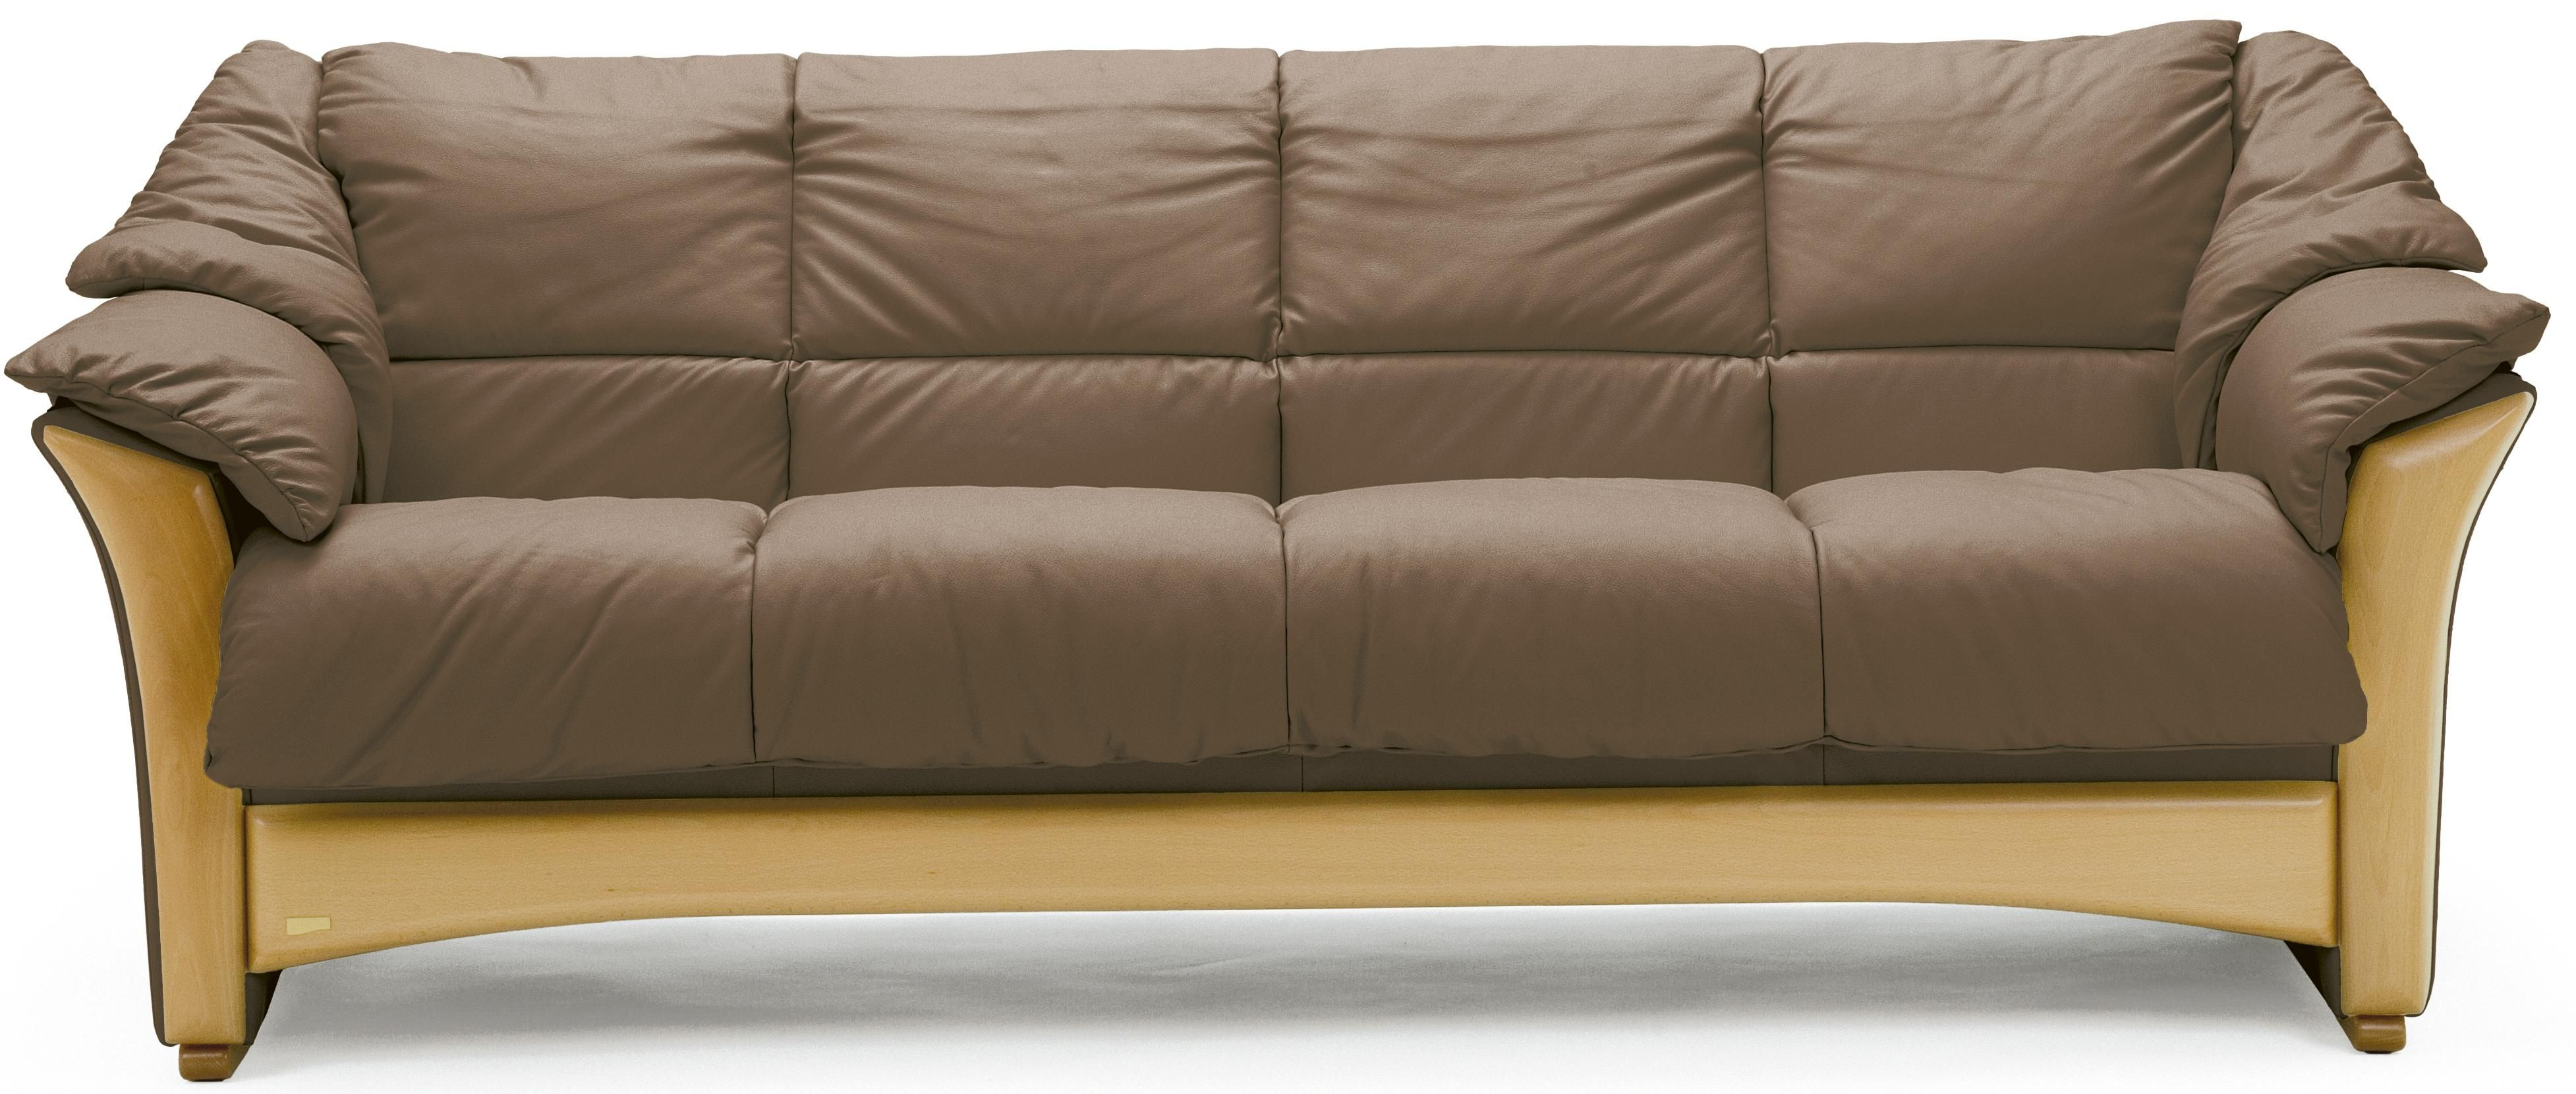 Stressless By Ekornes Furniture: Oslo Collection Sofa In 3 And 4 Seat  Leather Versions.